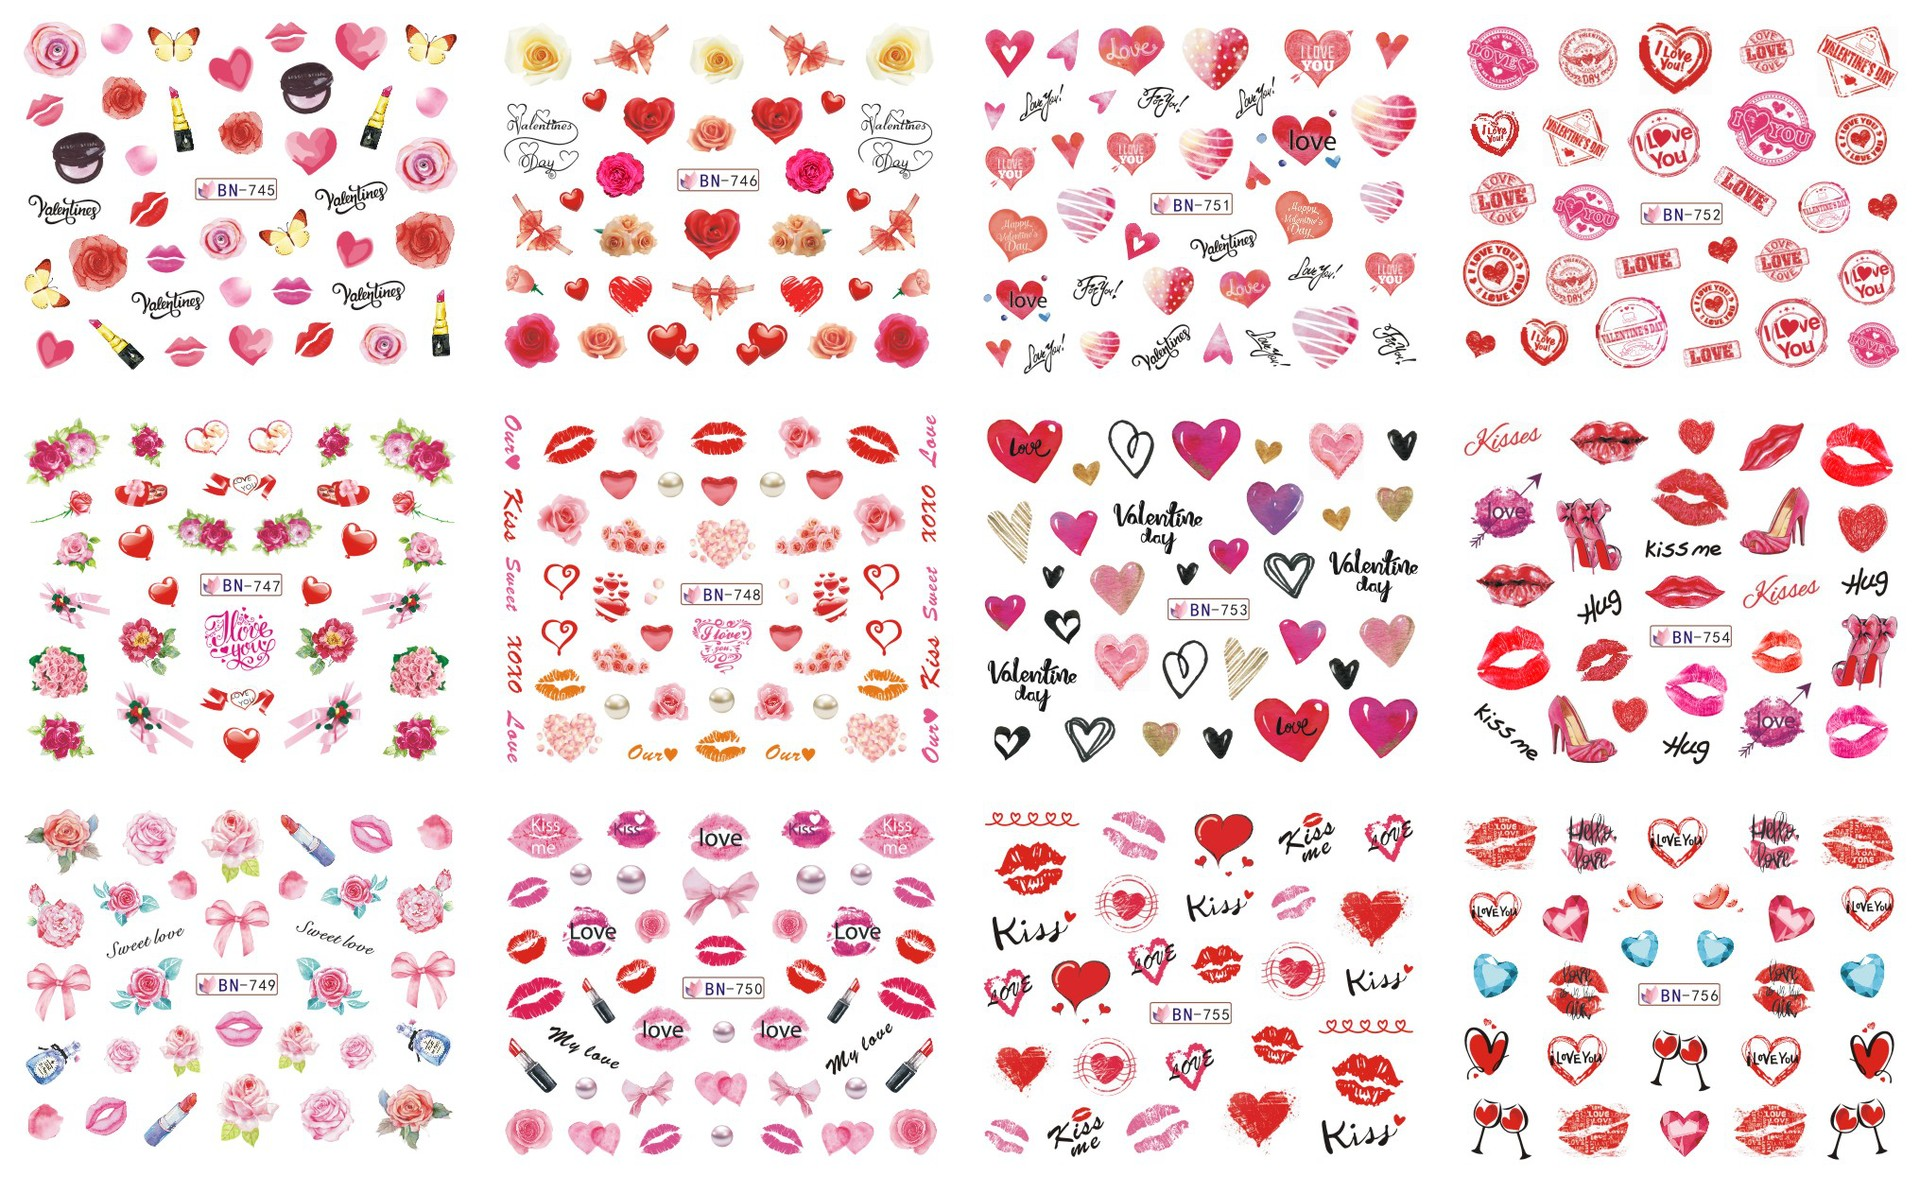 BN685-864 Large Flower Fire Lie Niao Nail Sticker Cross Border Electricity Supplier Valentine's Day Nail Sticker